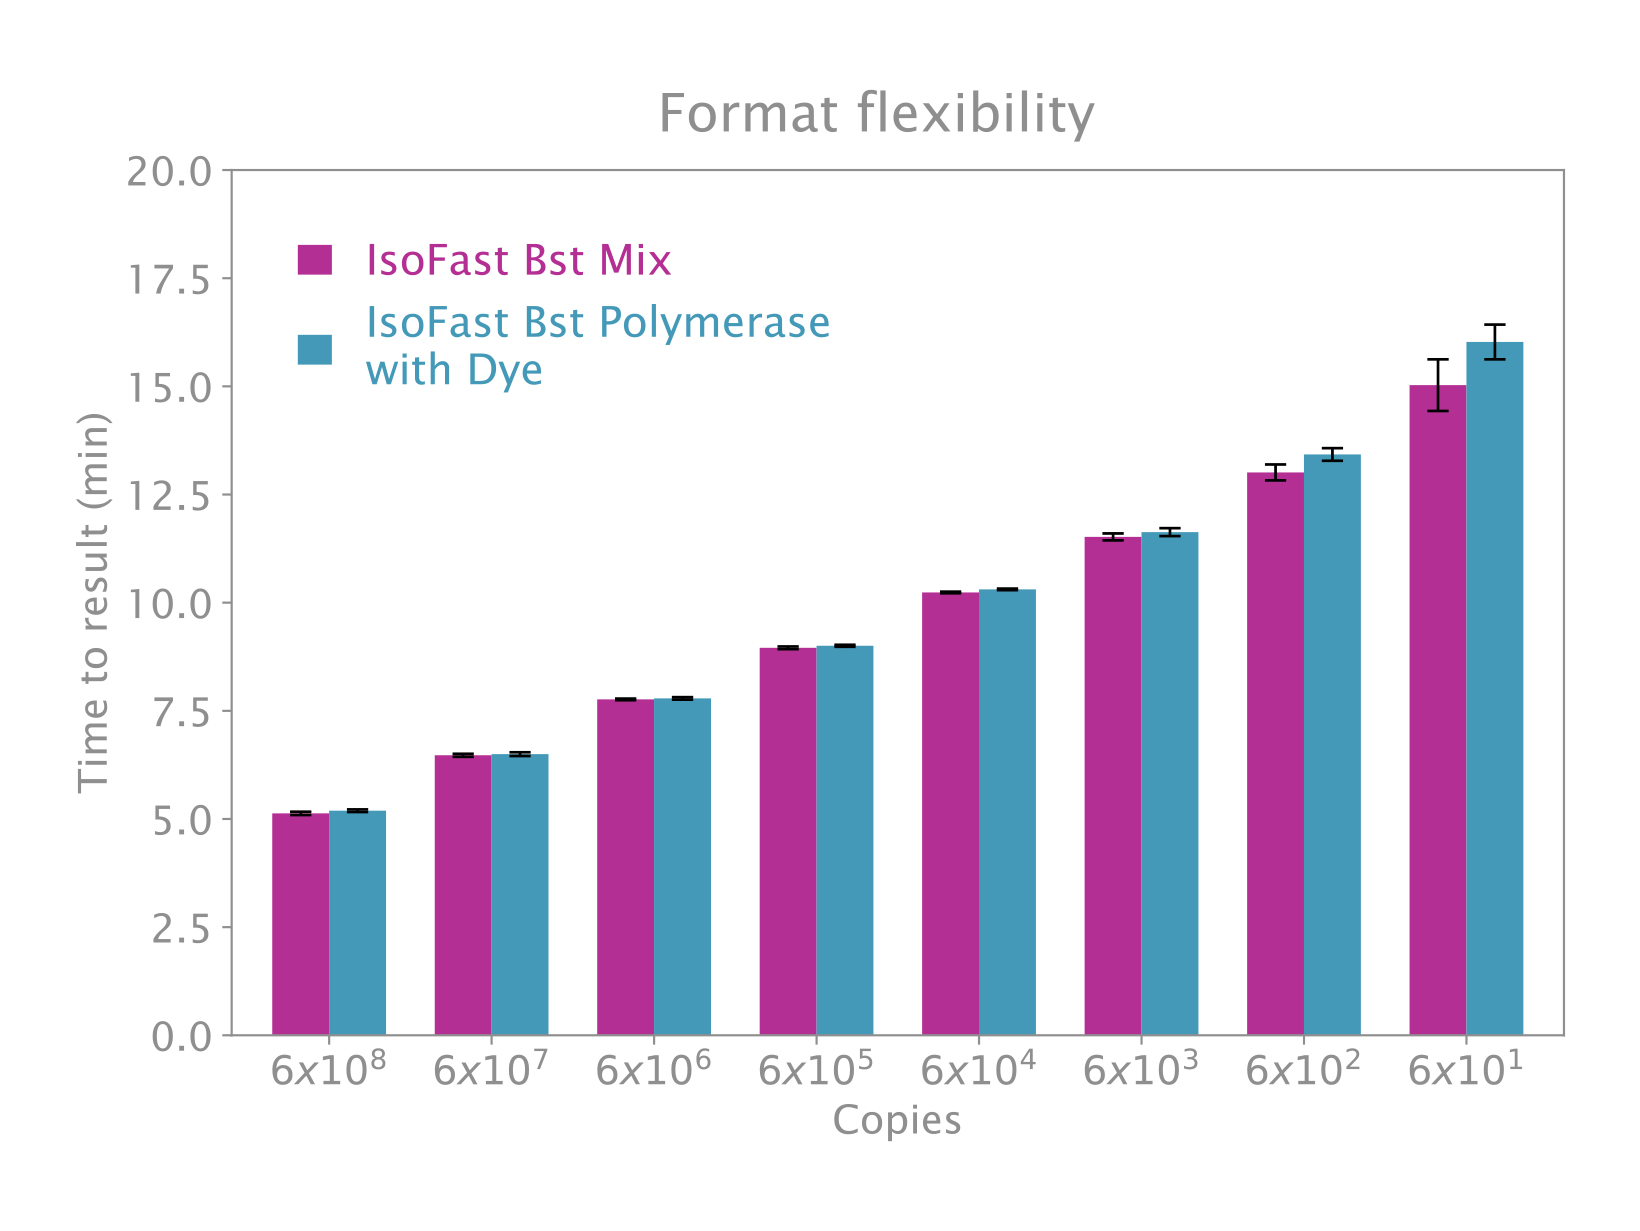 Chart showing isothermal amplification comparison between IsoFast Bst Polymerase and IsoFast Bst Mix.